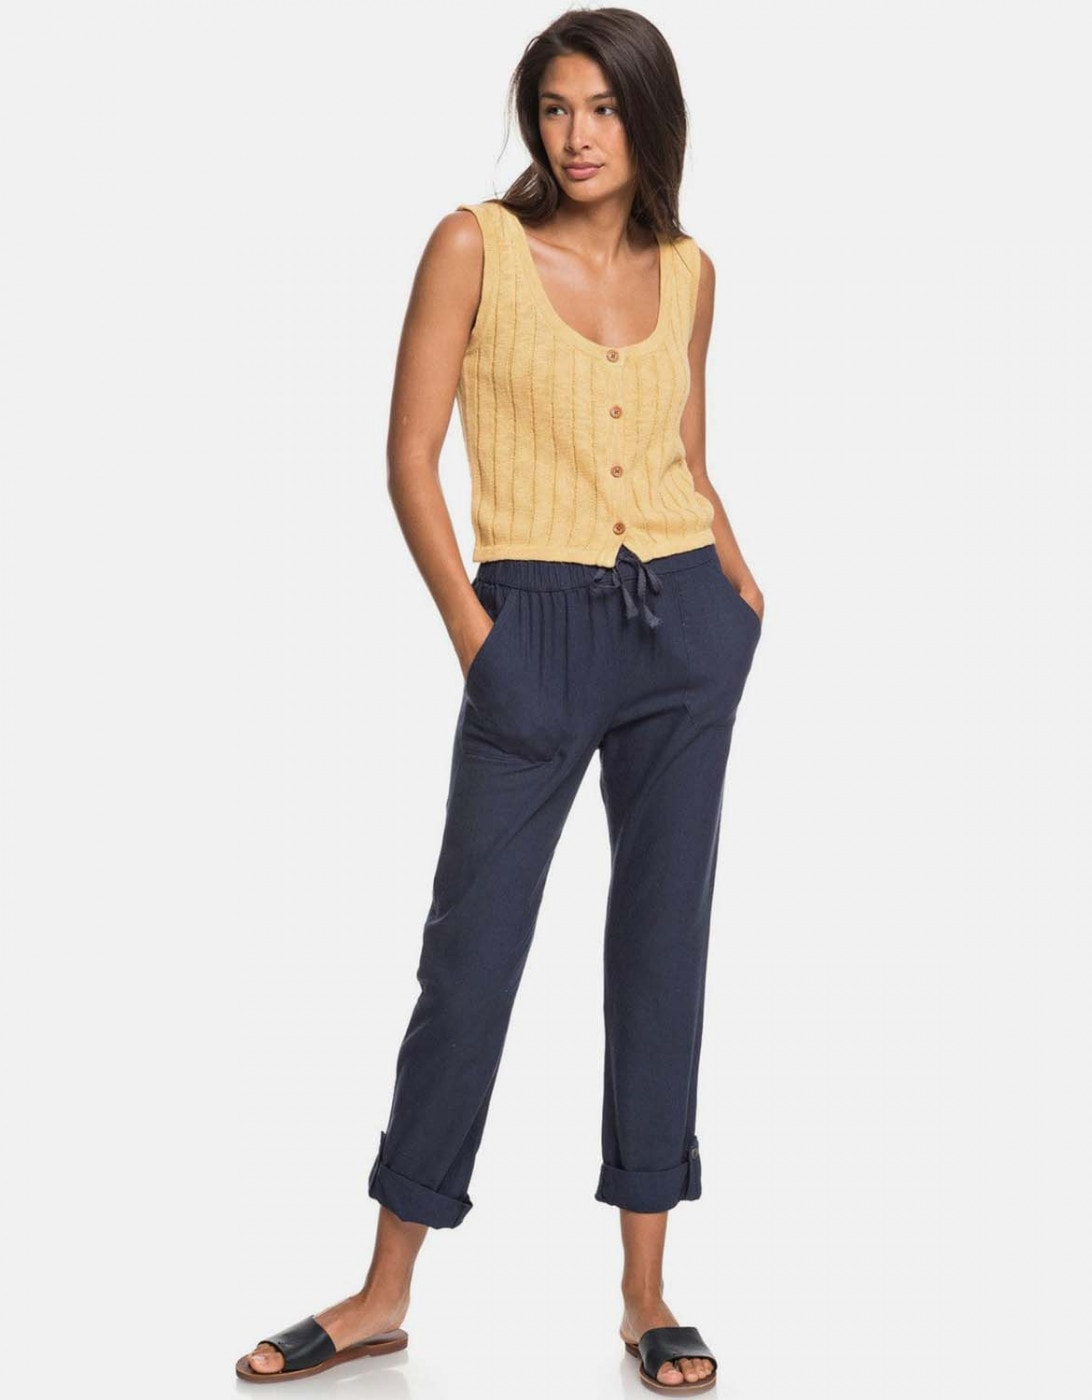 Roxy Dark Blue Cropped Linen Pants